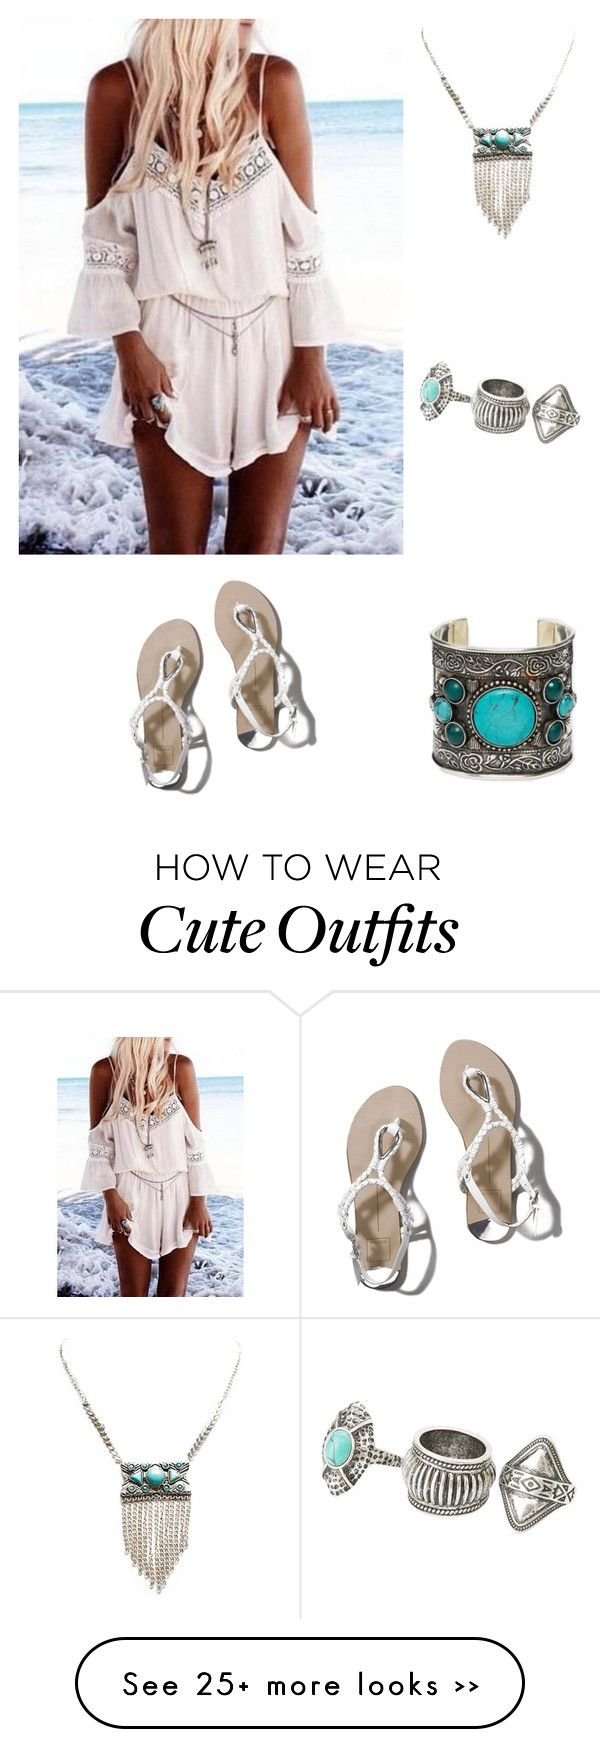 """Cute outfit"" by snhollick on Polyvore"